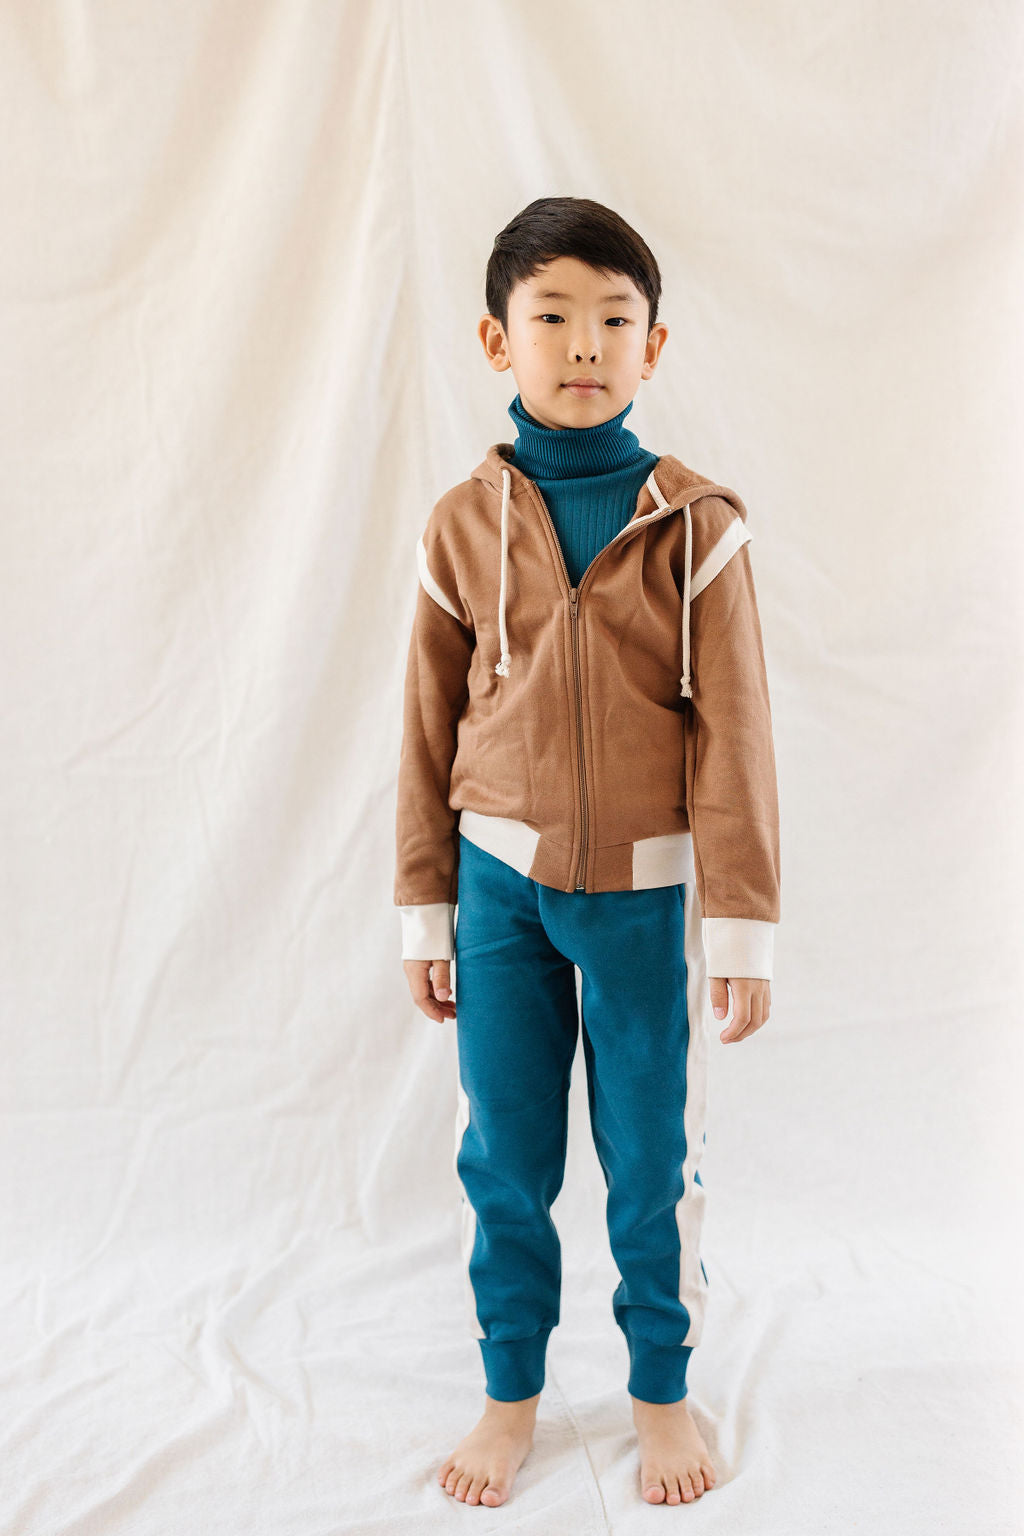 Fin and Vince - Fleece Jacket (Cinnamon) - Only 6/12 & 2/3